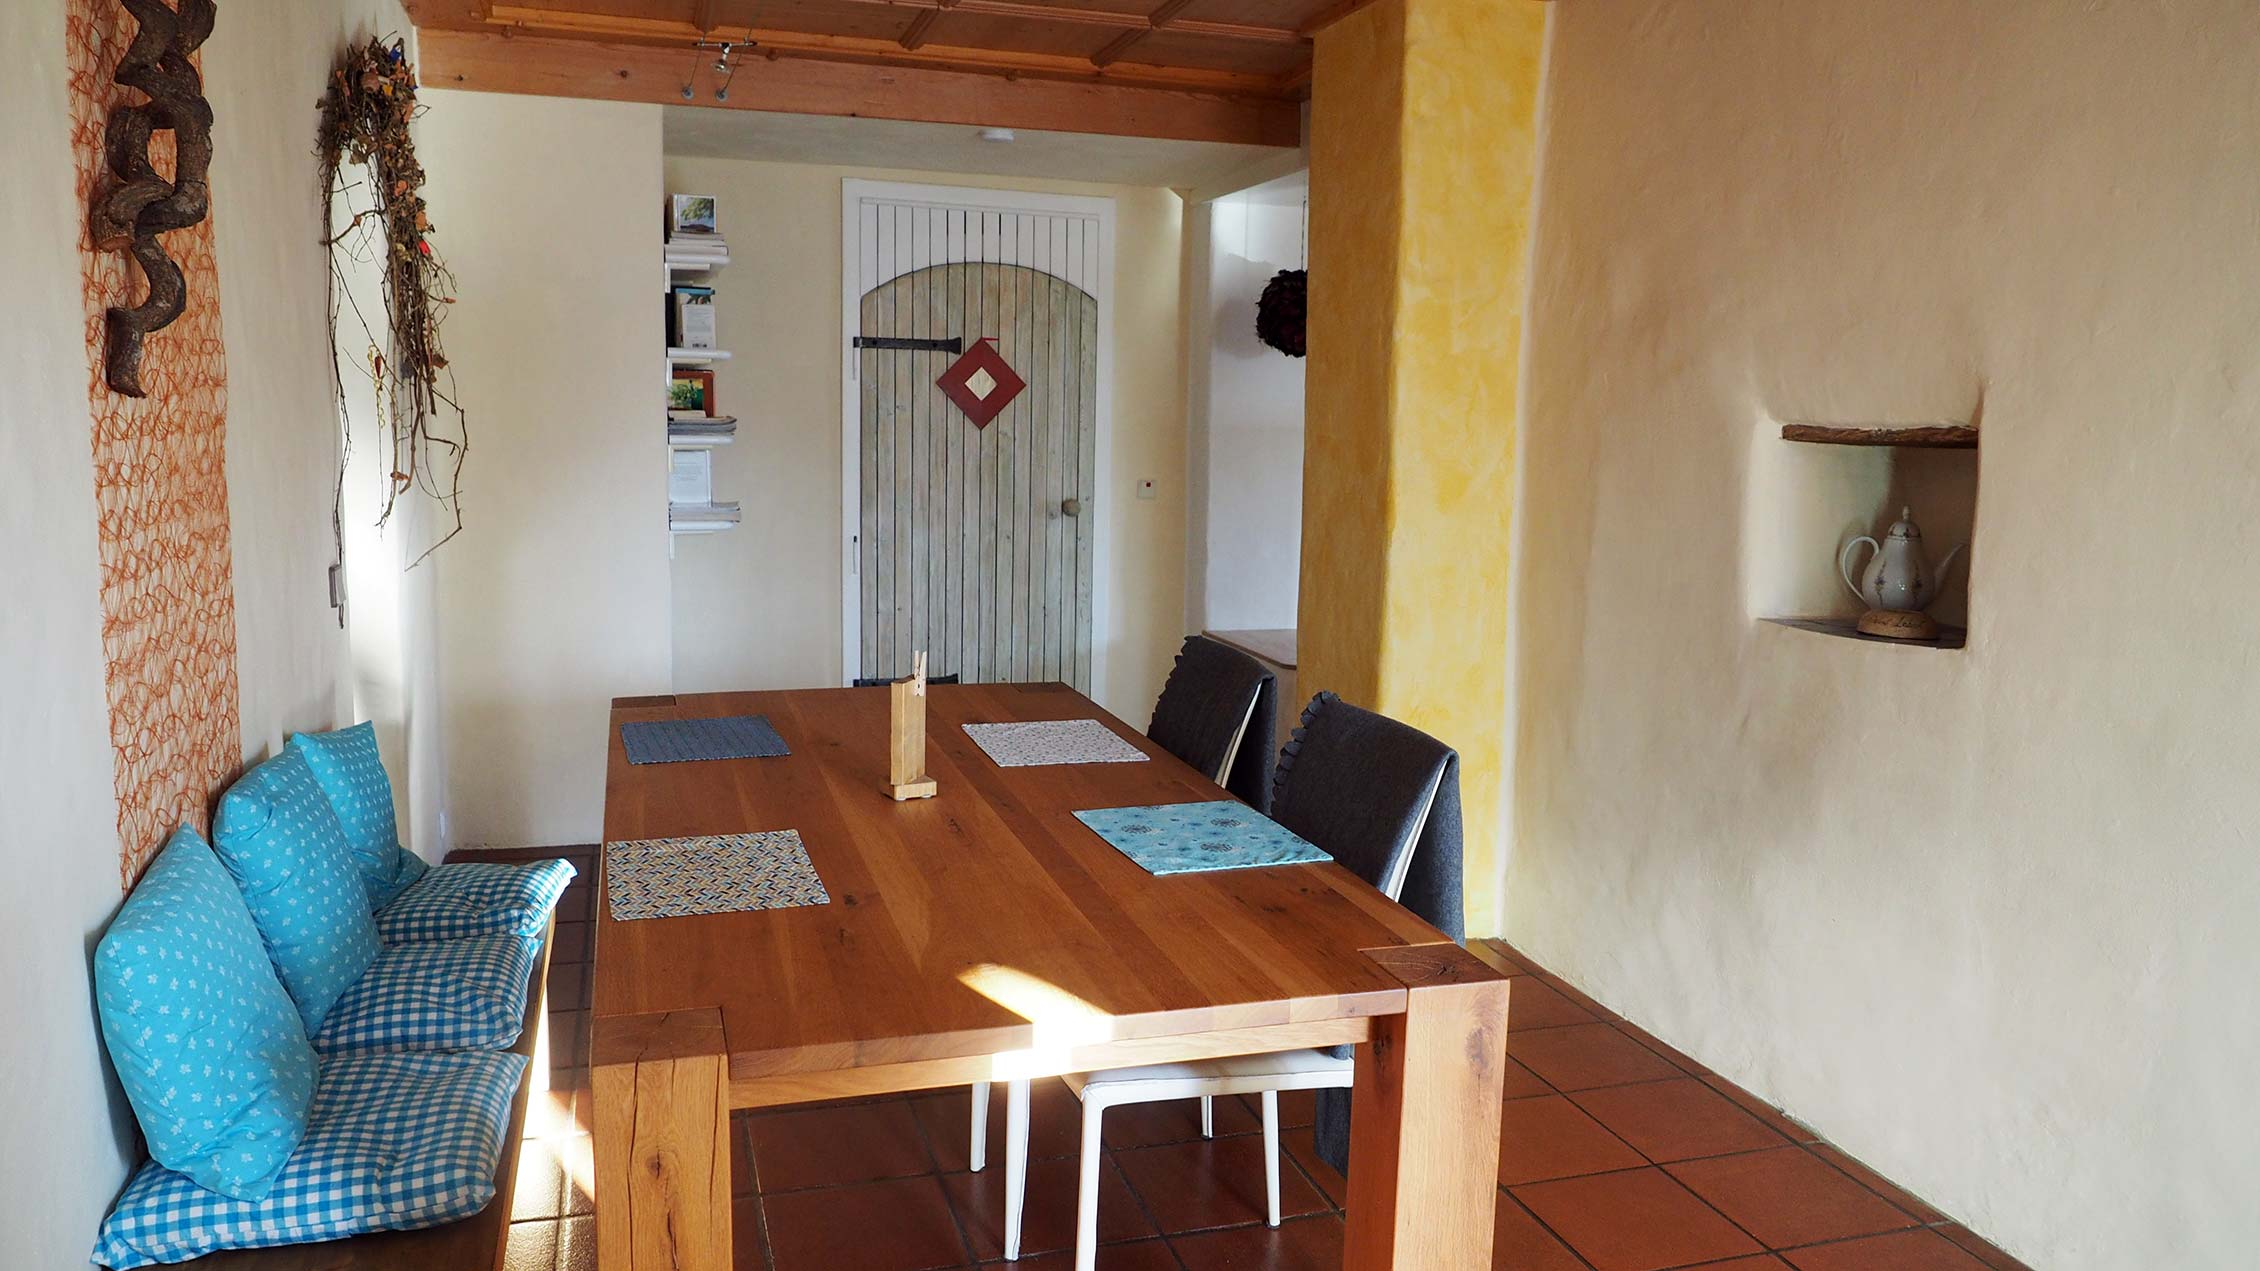 Comfortable dining area of the spacious holiday apartment in the nature and herbal village of Irschen.